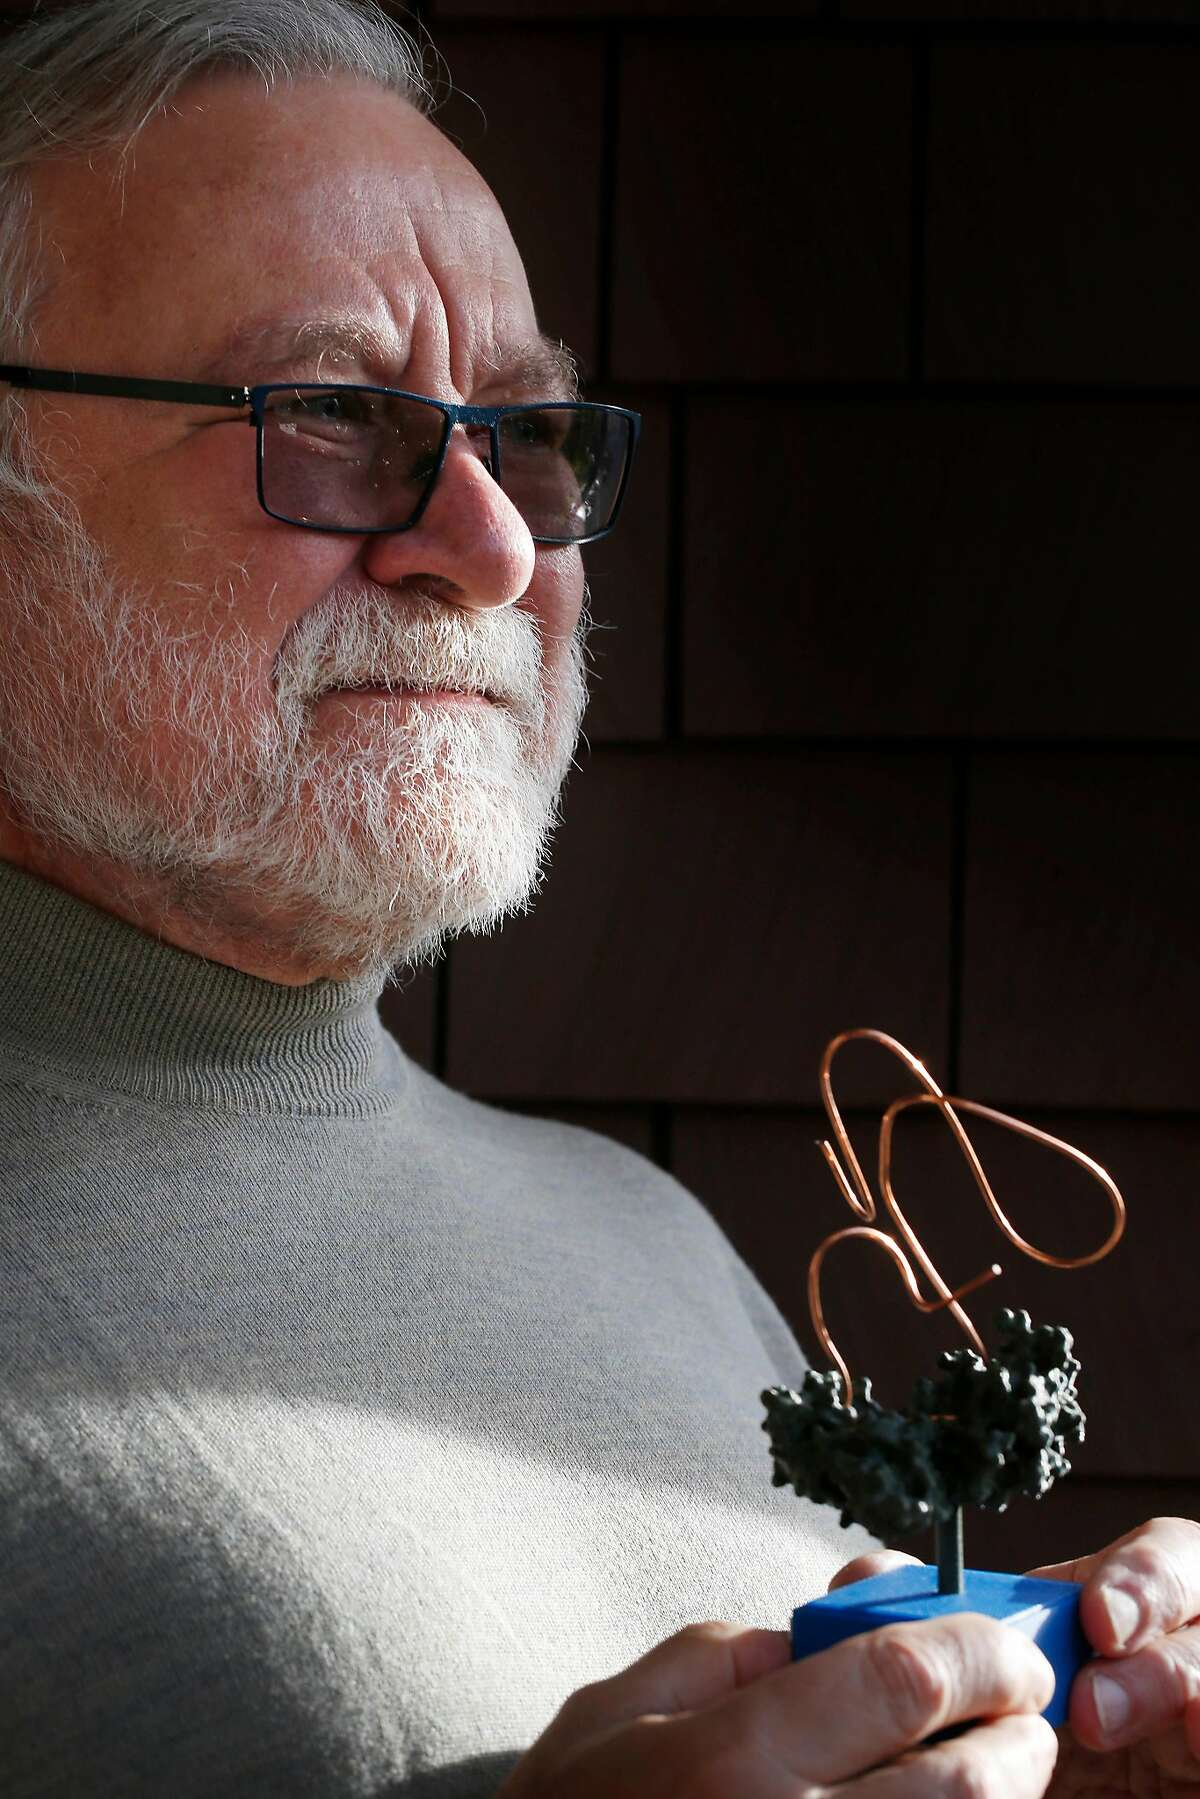 Peter Walter, UCSF biochemist, holds a model of the Ire1 binding to an unfolded protein as he stands for a portrait on Friday, December 1, 2017 in San Francisco, Calif. Walter is one of this year's recipients of The Breakthrough Prize.